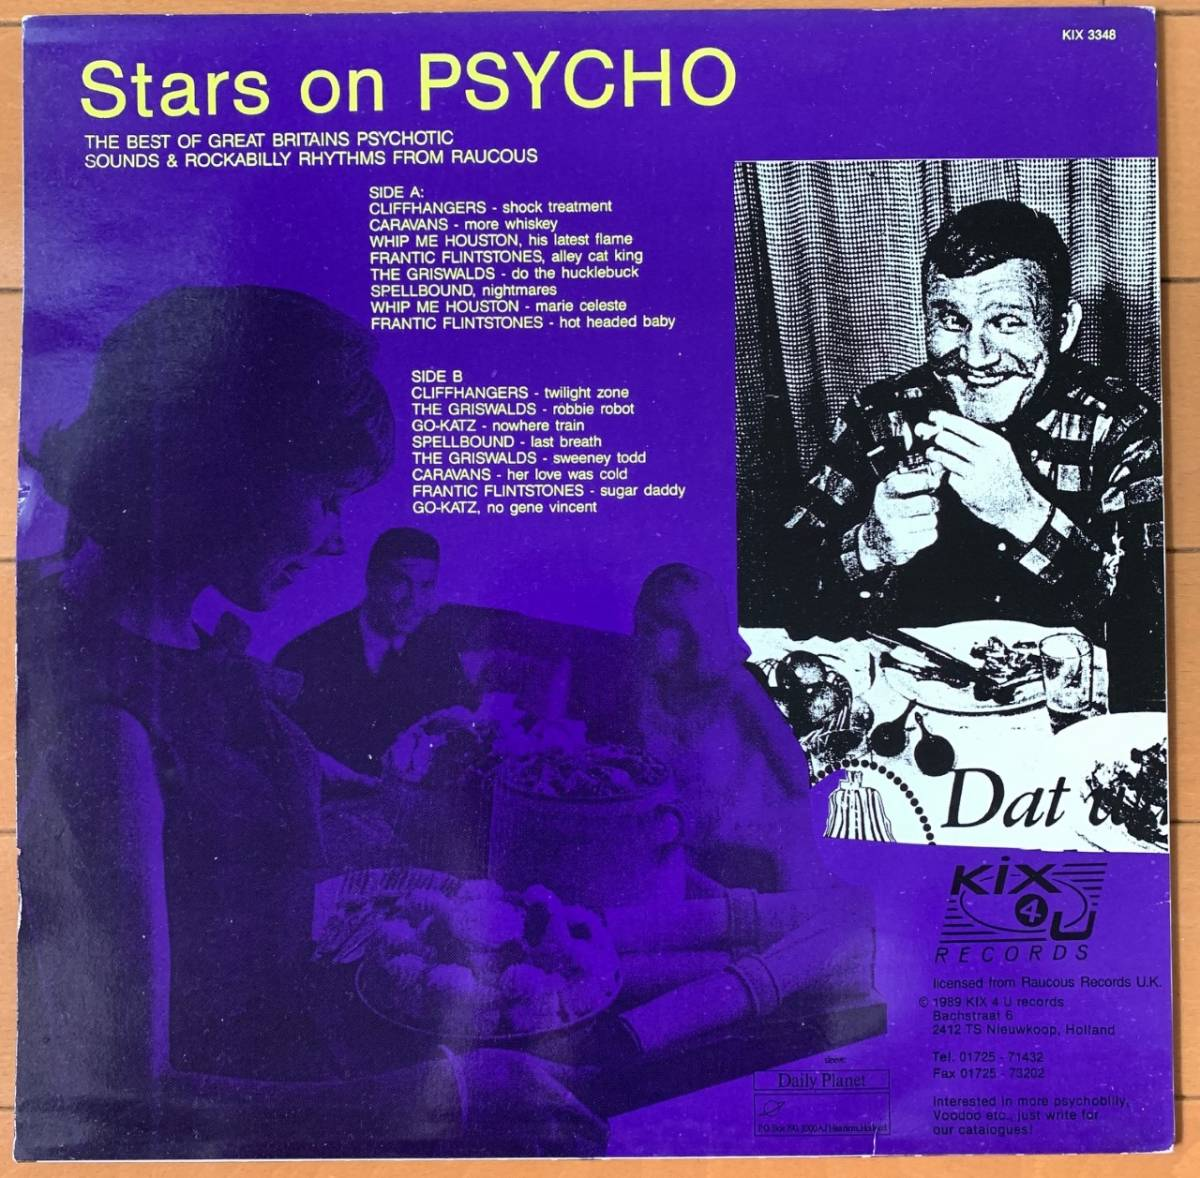 【値下】V.A. サイコビリー Stars on PSYCHO LP ロカビリー KIX4U CLIFFHANGERS,WHIP ME HOUSTON,ネオロカGO-KATZ,THE GRISWALDS,CARAVANS_画像2